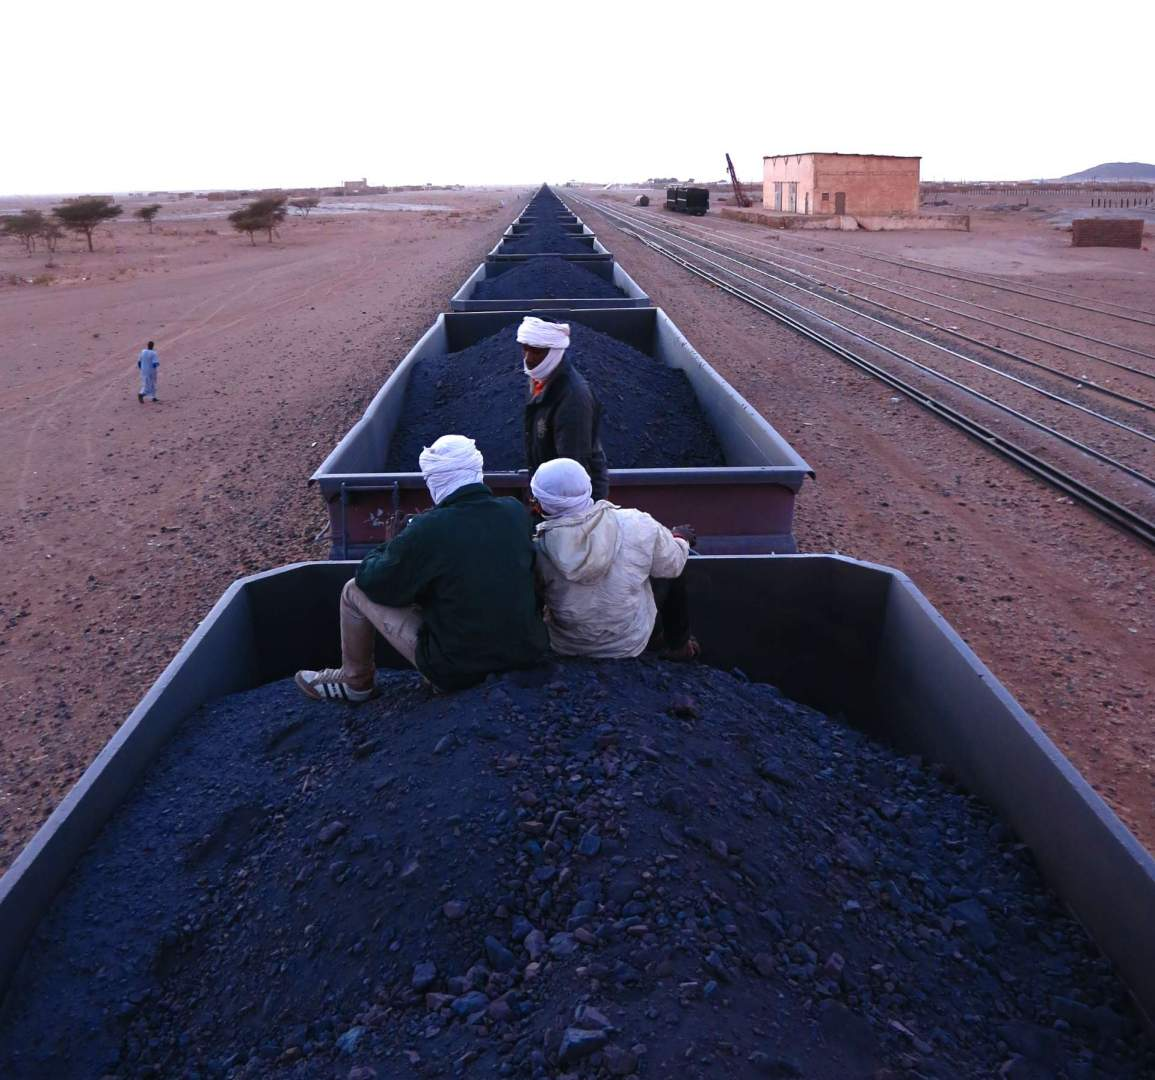 atop iron ore train Mauritania _ c Elliott